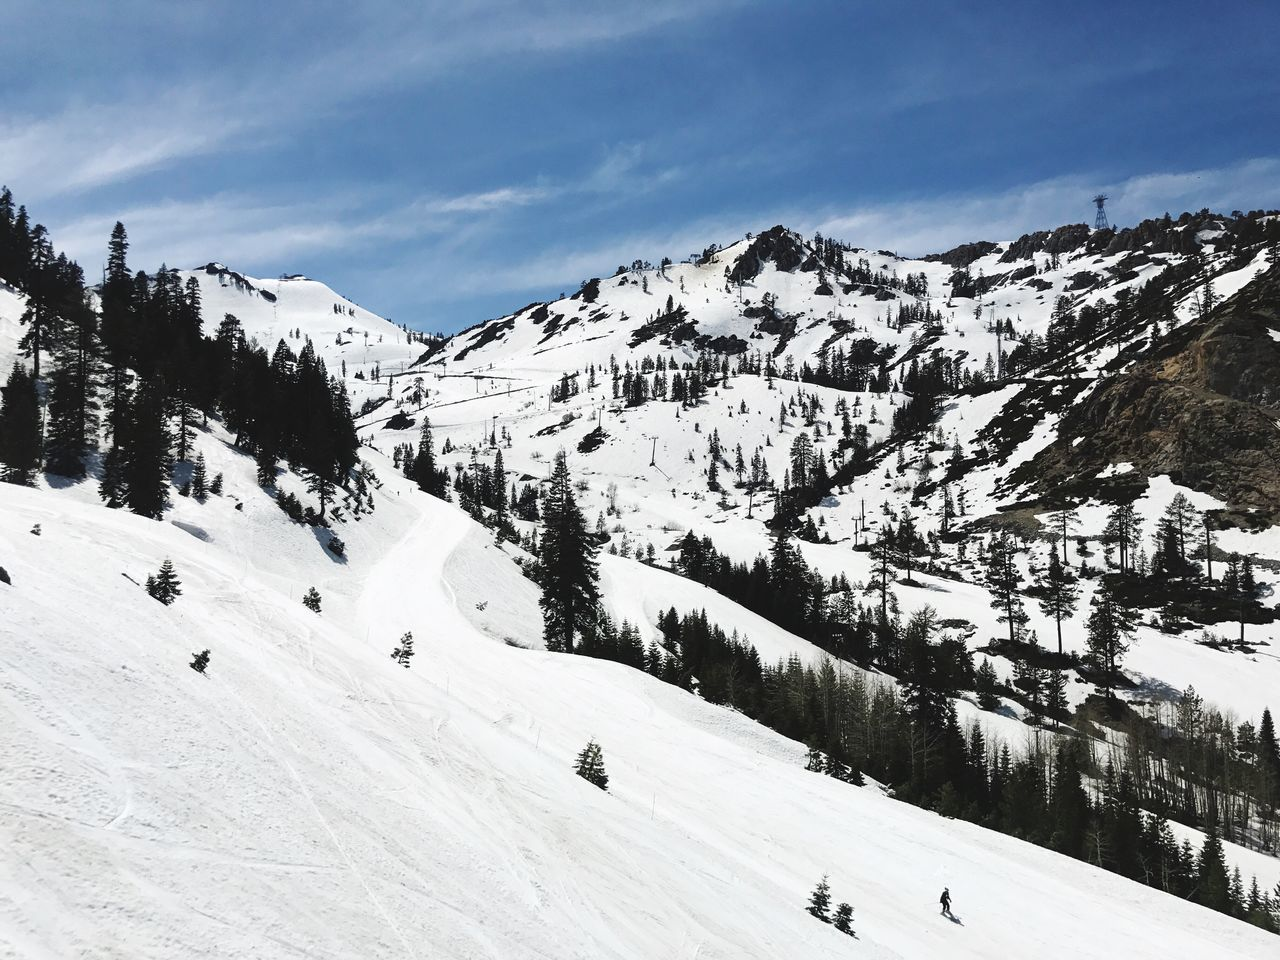 May 5th // Snow Winter Cold Temperature Mountain Nature Sky Weather Scenics Beauty In Nature Tranquility Skiing Day Outdoors Sport Ski Holiday Cloud - Sky Tranquil Scene Leisure Activity Tree Landscape